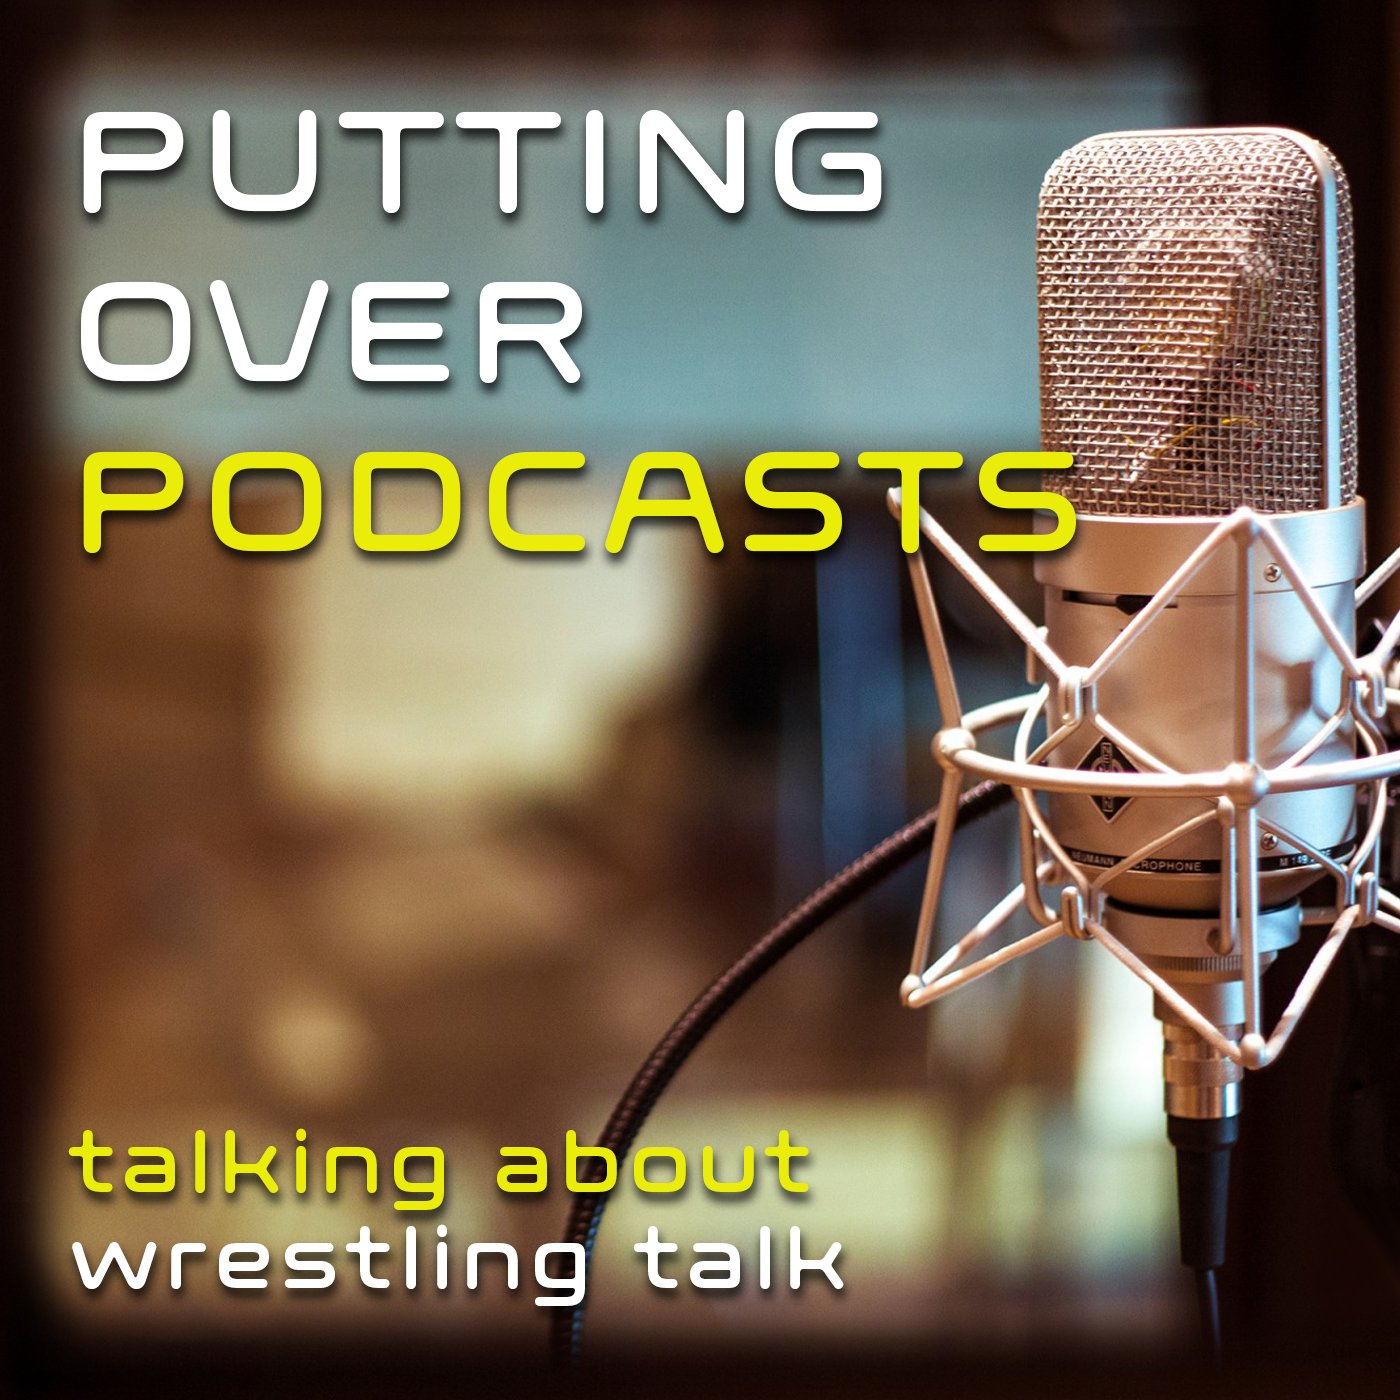 Putting Over Podcasts - Episode 1 - Our Vantage Point's Joe Marotta